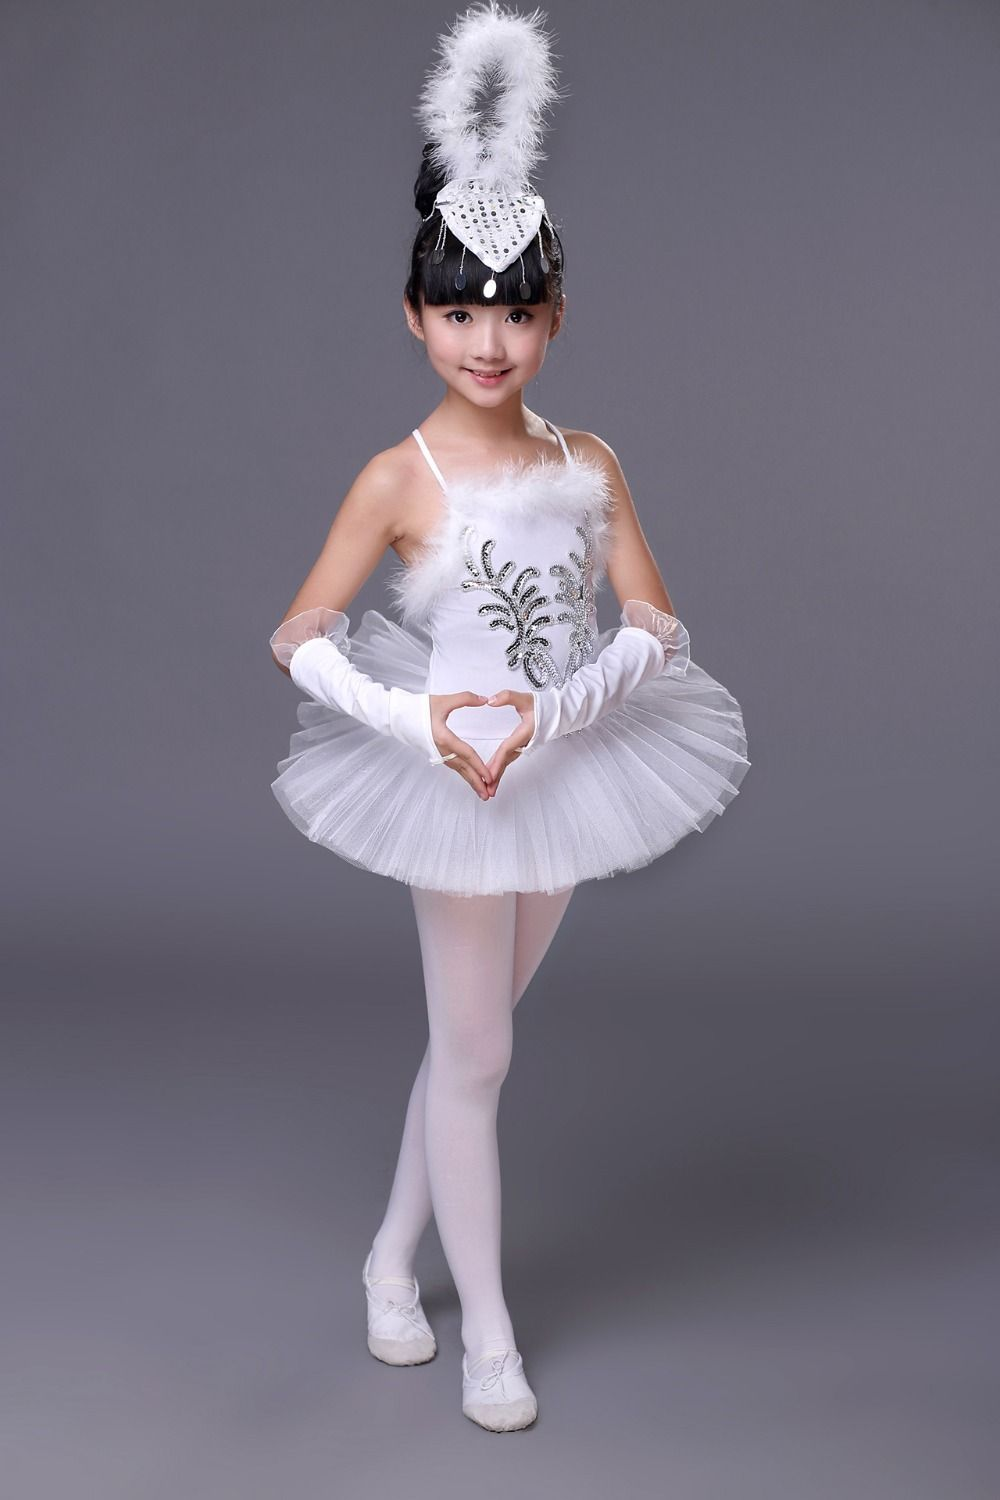 7e95df4f5469 Girls White Swan Lake Ballet Costumes Children Girl Dance Clothing Kids  Sequin Feather Ballet Dress Children Dance Wear YL361